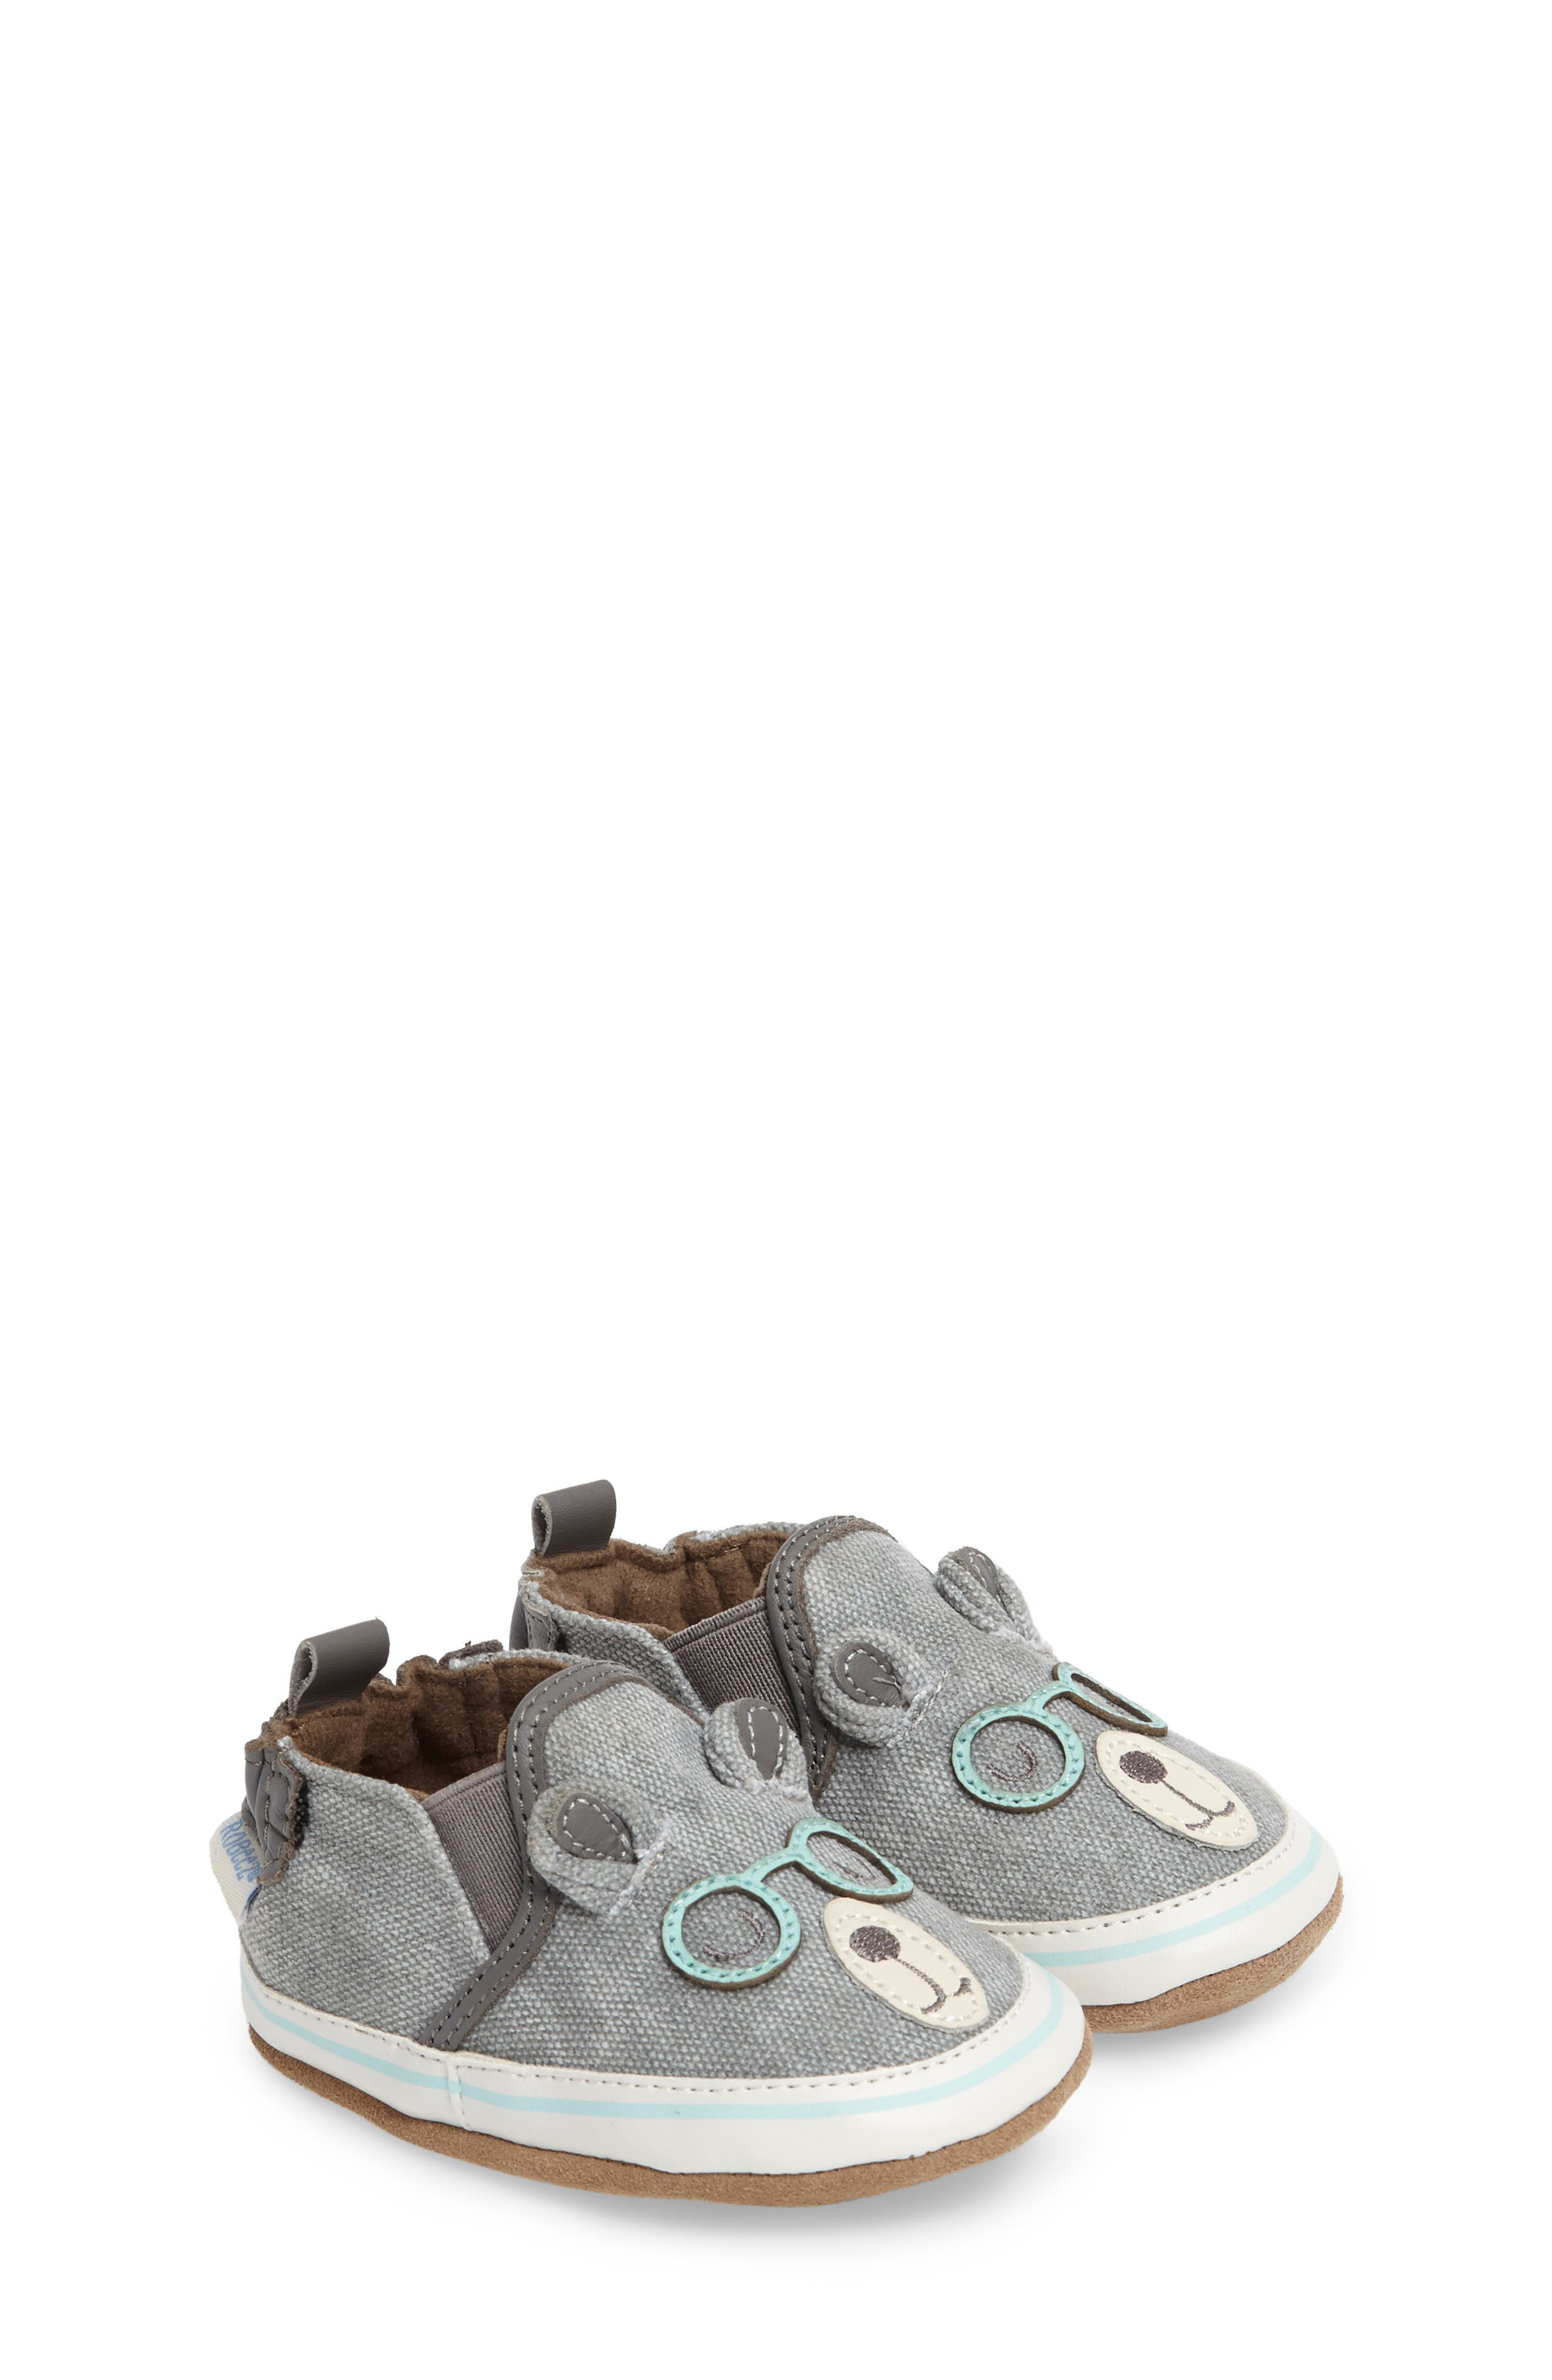 Alternate Image 1 Selected - Robeez® 'Brainy Bear' Crib Shoe (Baby & Walker)